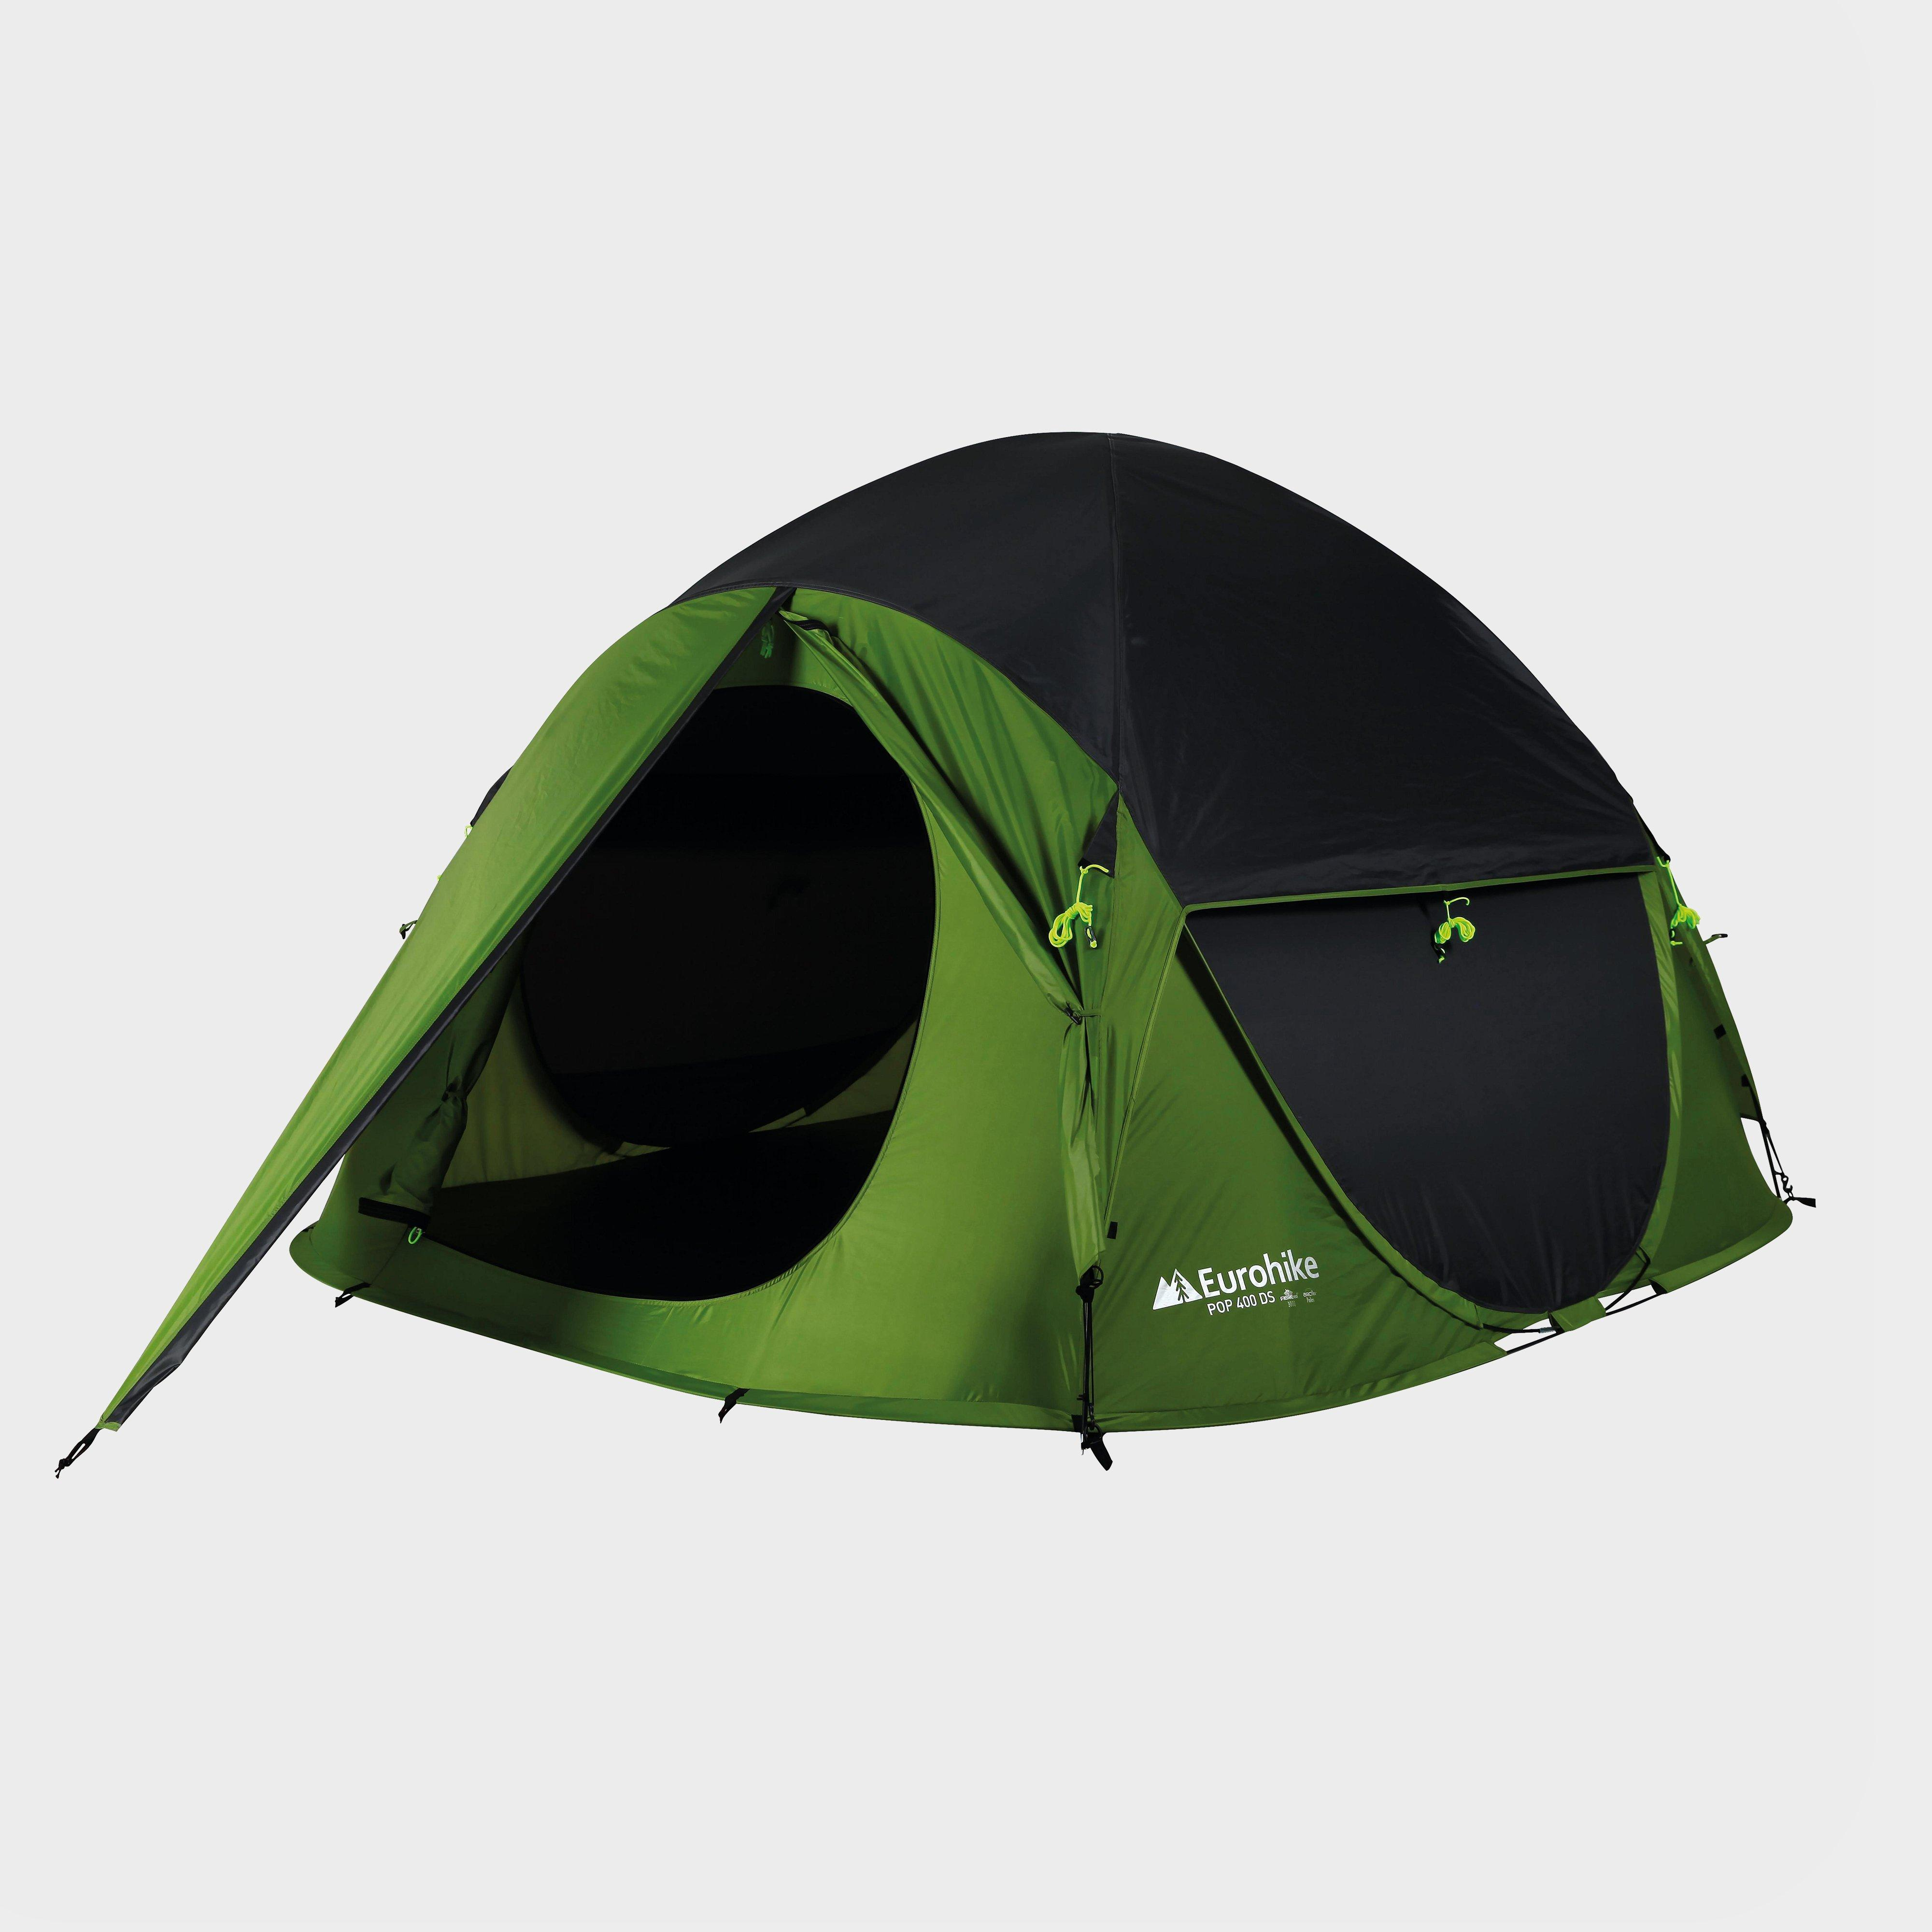 New Eurohike Pop 400 DS 4 person Tent